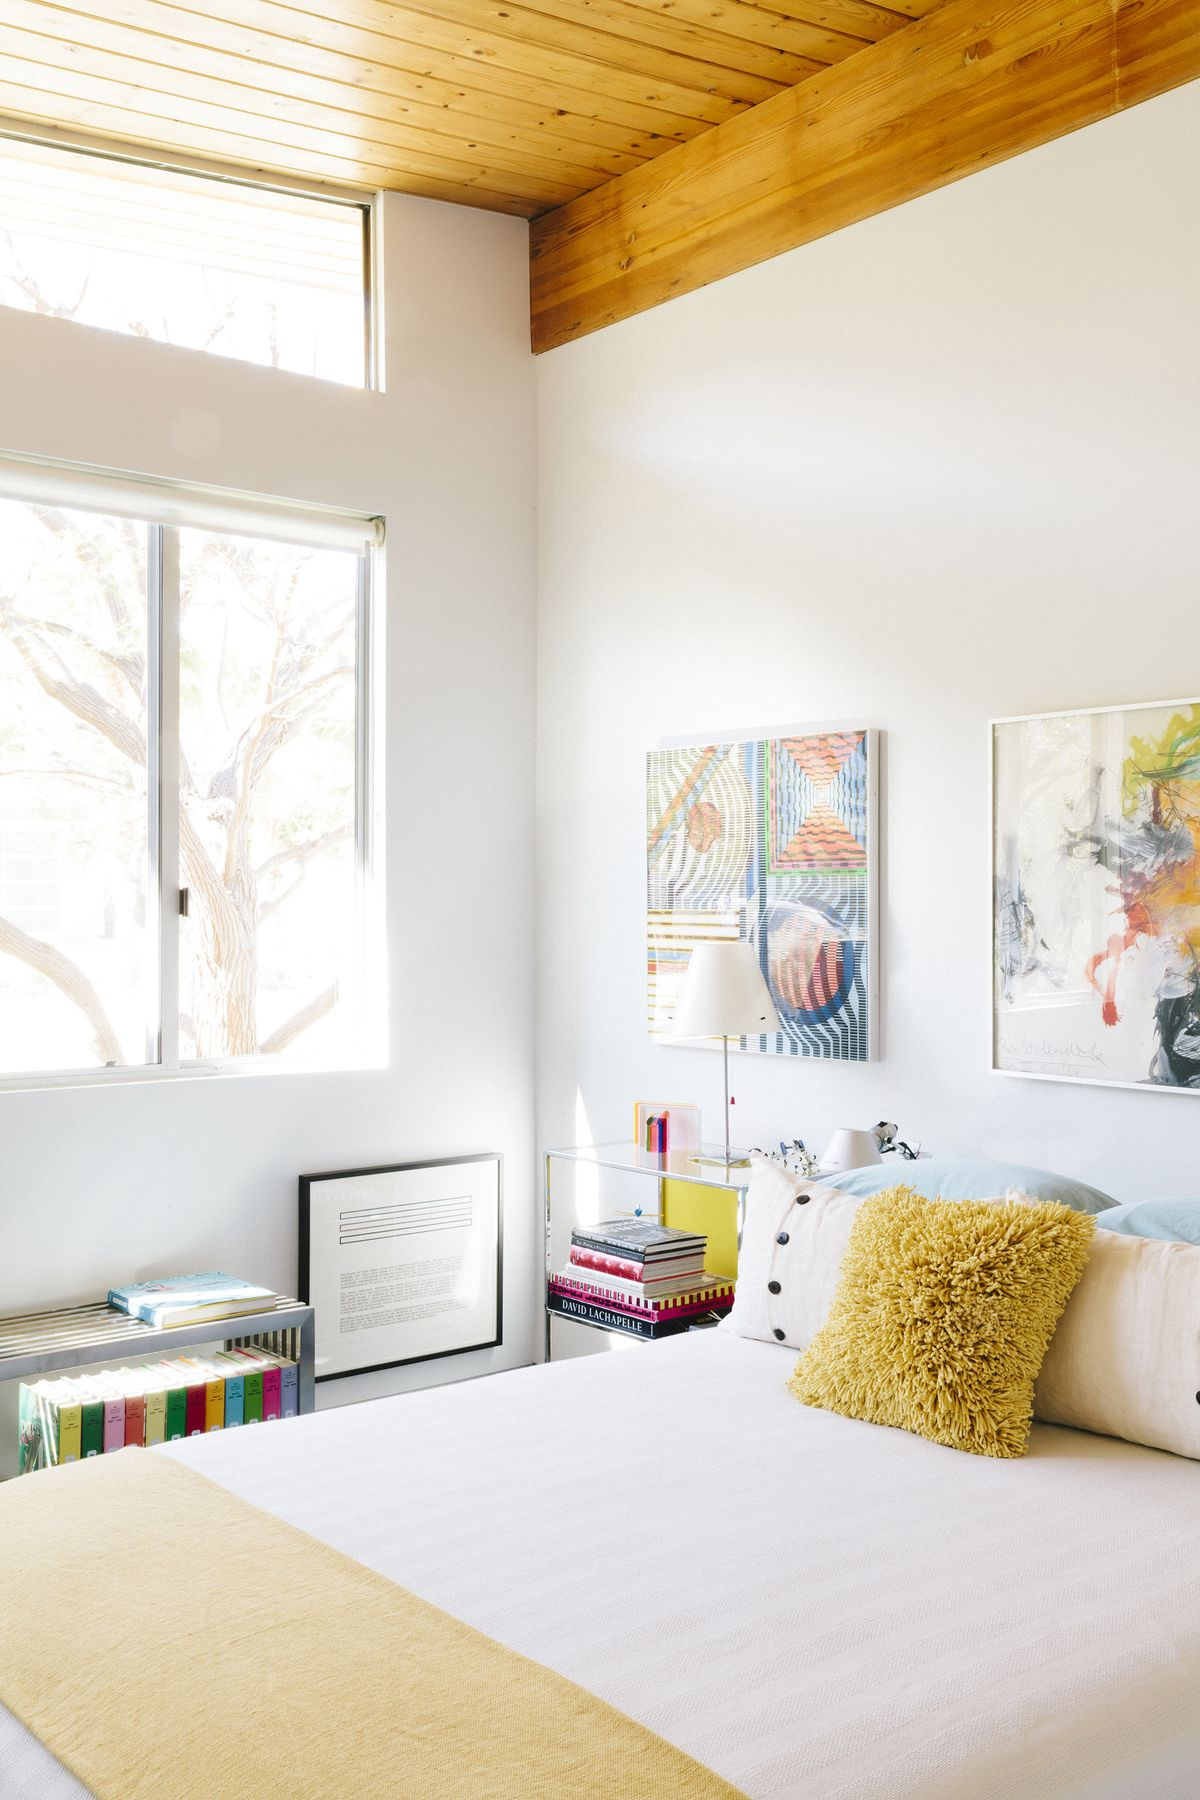 A bedroom. There is a large bed with white bed linens, a yellow blanket, and multiple assorted pillows. There is colorful artwork hanging above the bed. There is a large window letting in natural light.